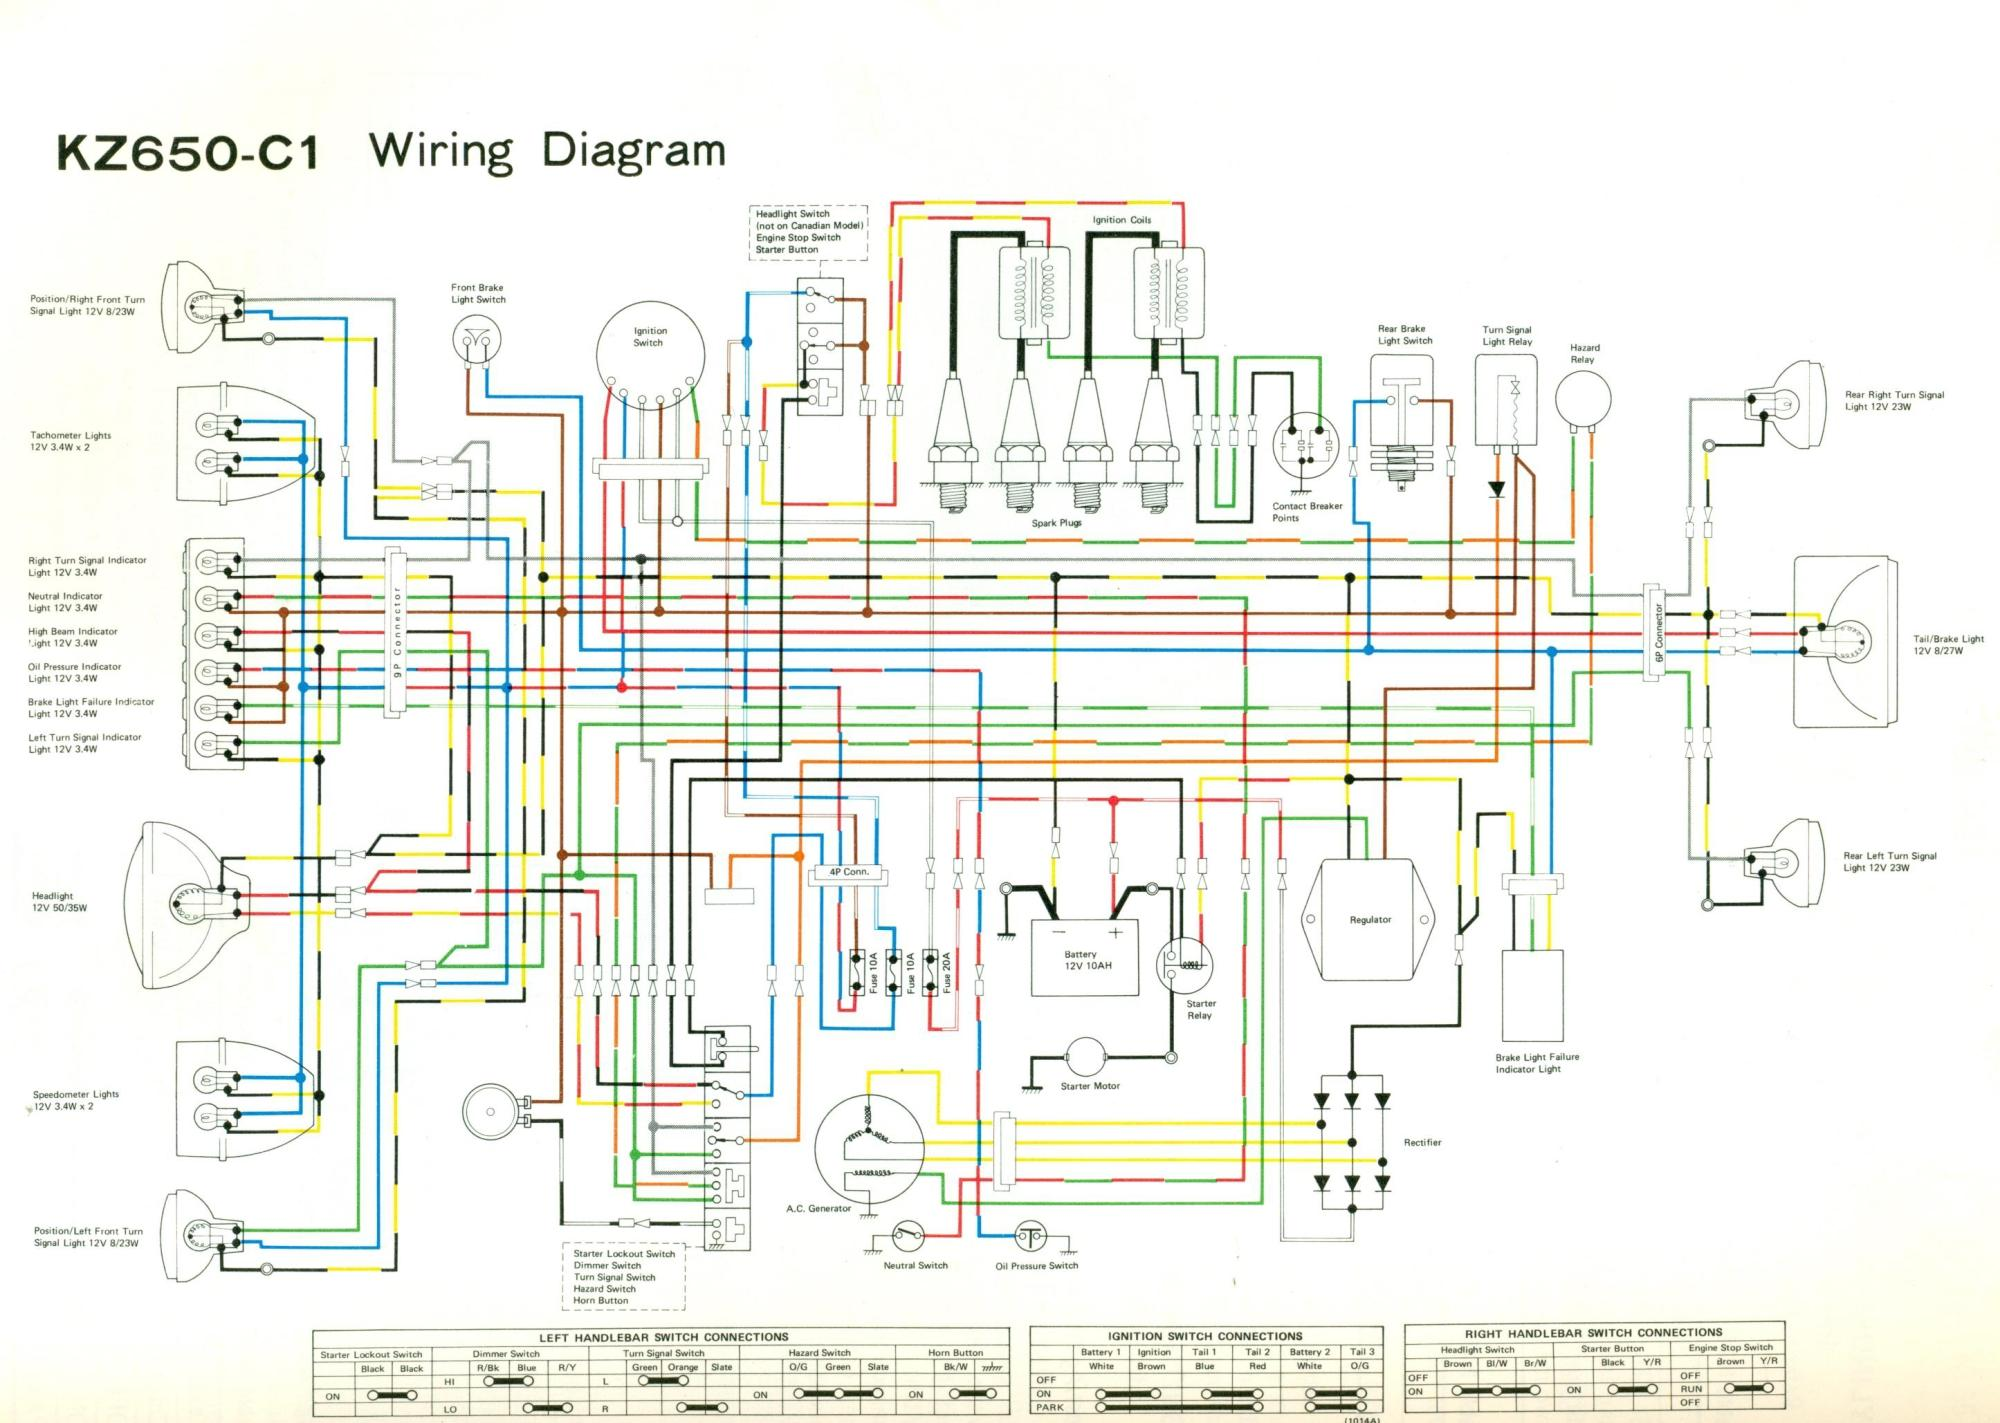 hight resolution of e1 wiring diagram wiring diagram portal furnace wiring diagram e1 wiring diagram